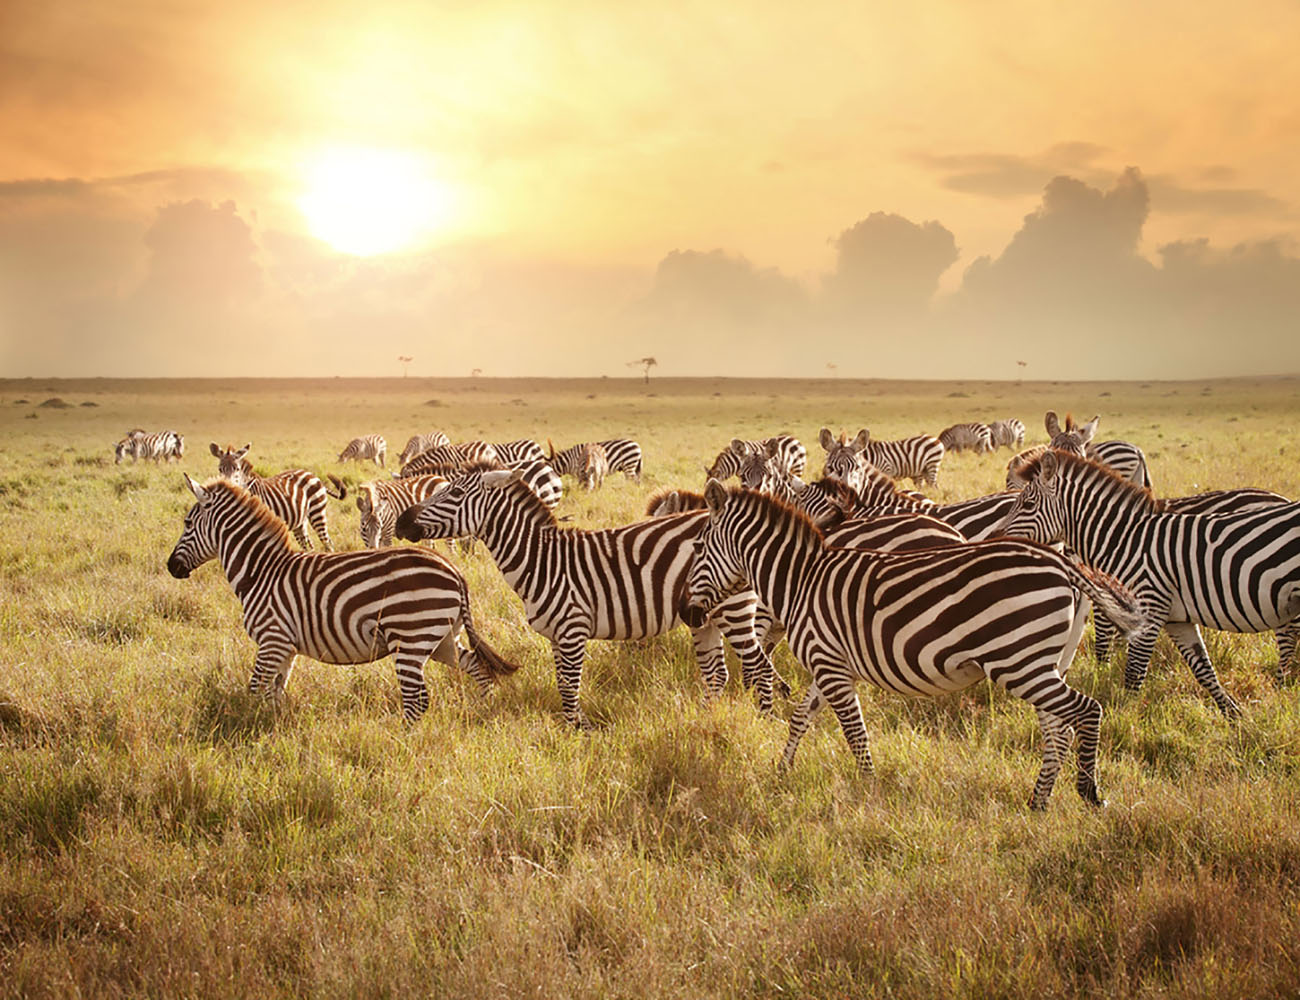 A group of zebras in the Savanna at sunrise.